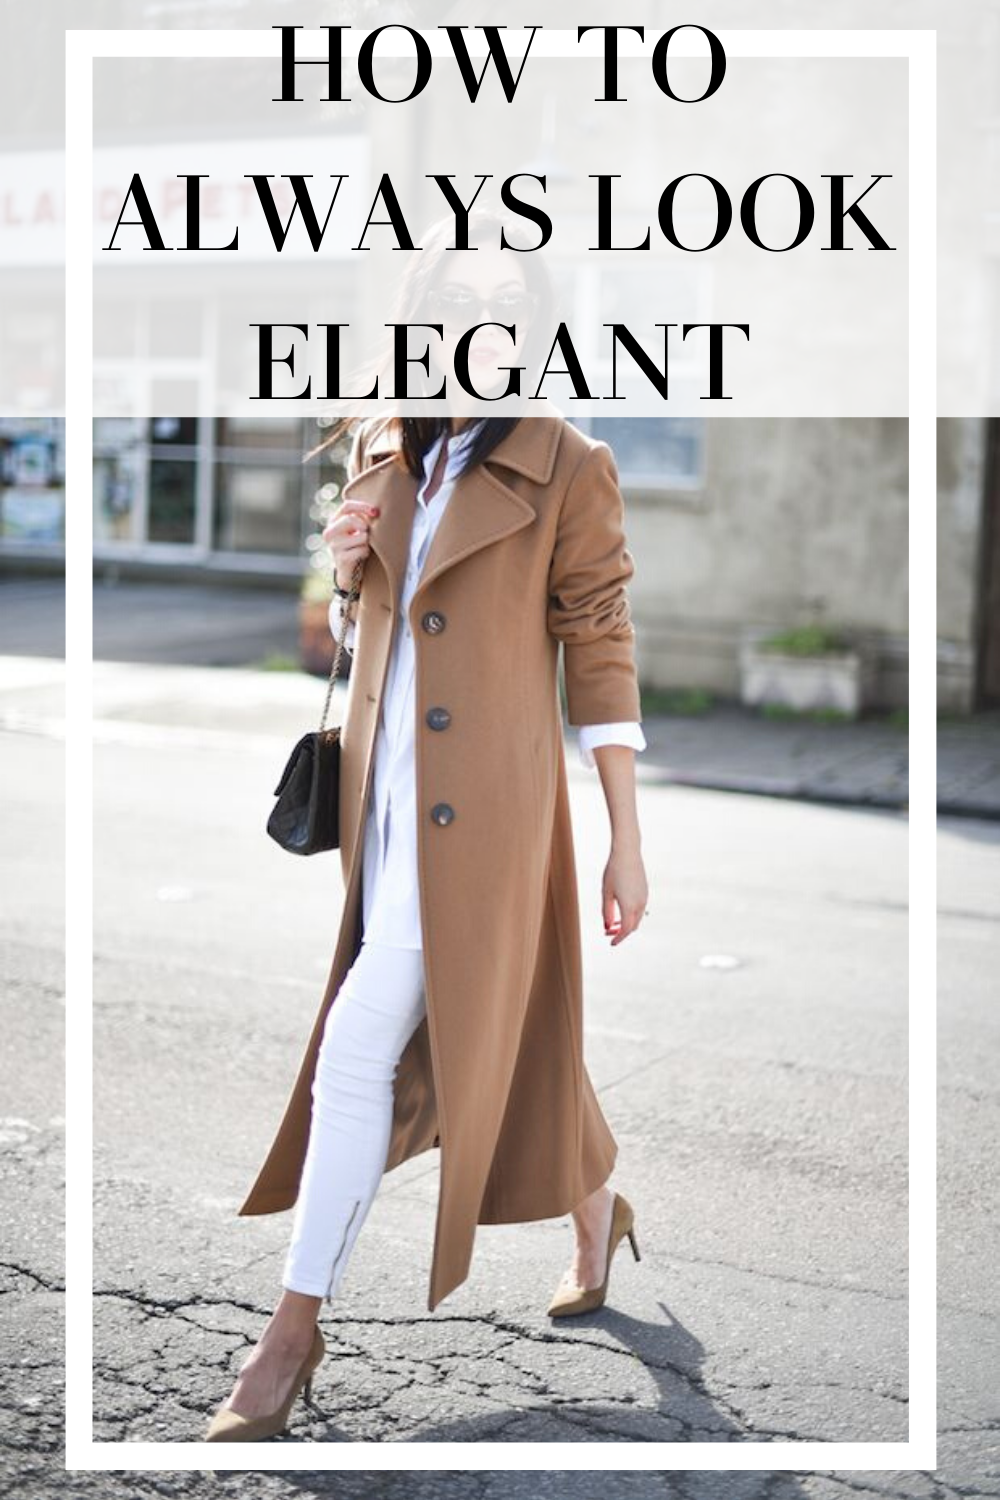 Looking elegant everyday isn't just for rich people or those that wear designer clothes. These 7 how to look elegant tips are easy to do and will have you looking chic and classy everyday! A camel coat is a must-have for looking expensive too.